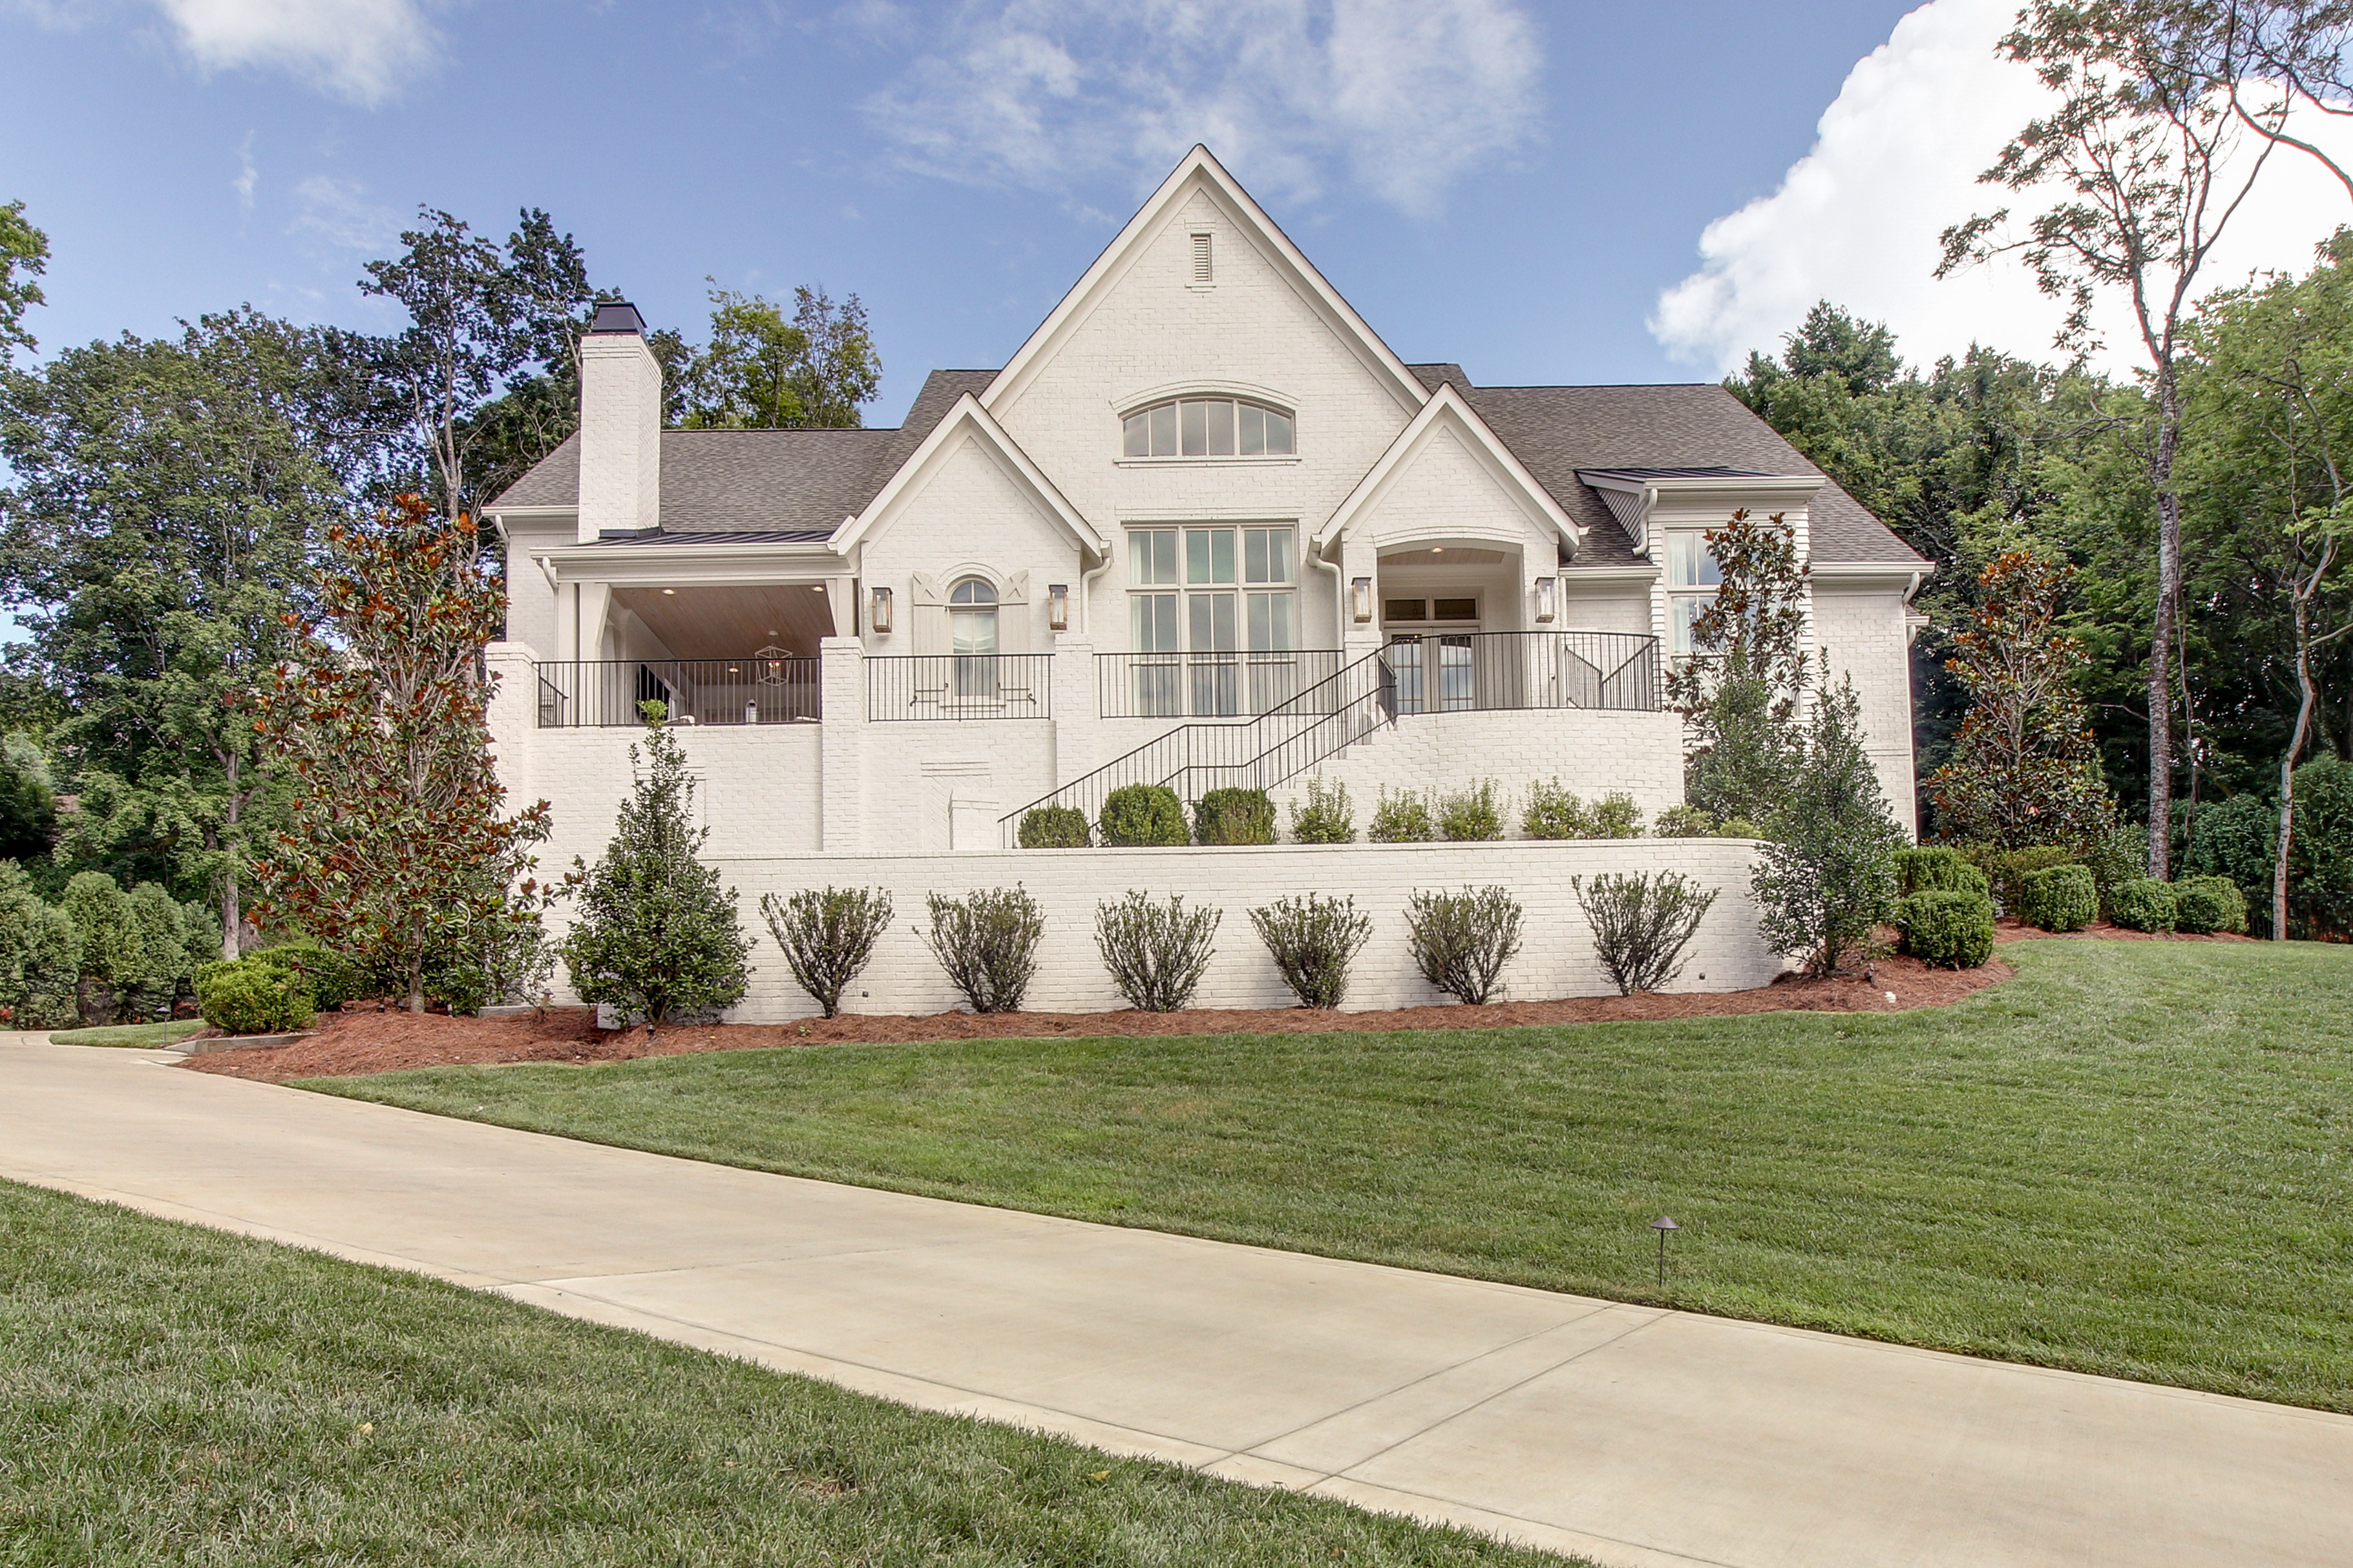 New homes with stairs to back door by fine home builder in Franklin, Brentwood, and Thompson Station TN with Custom Home Design